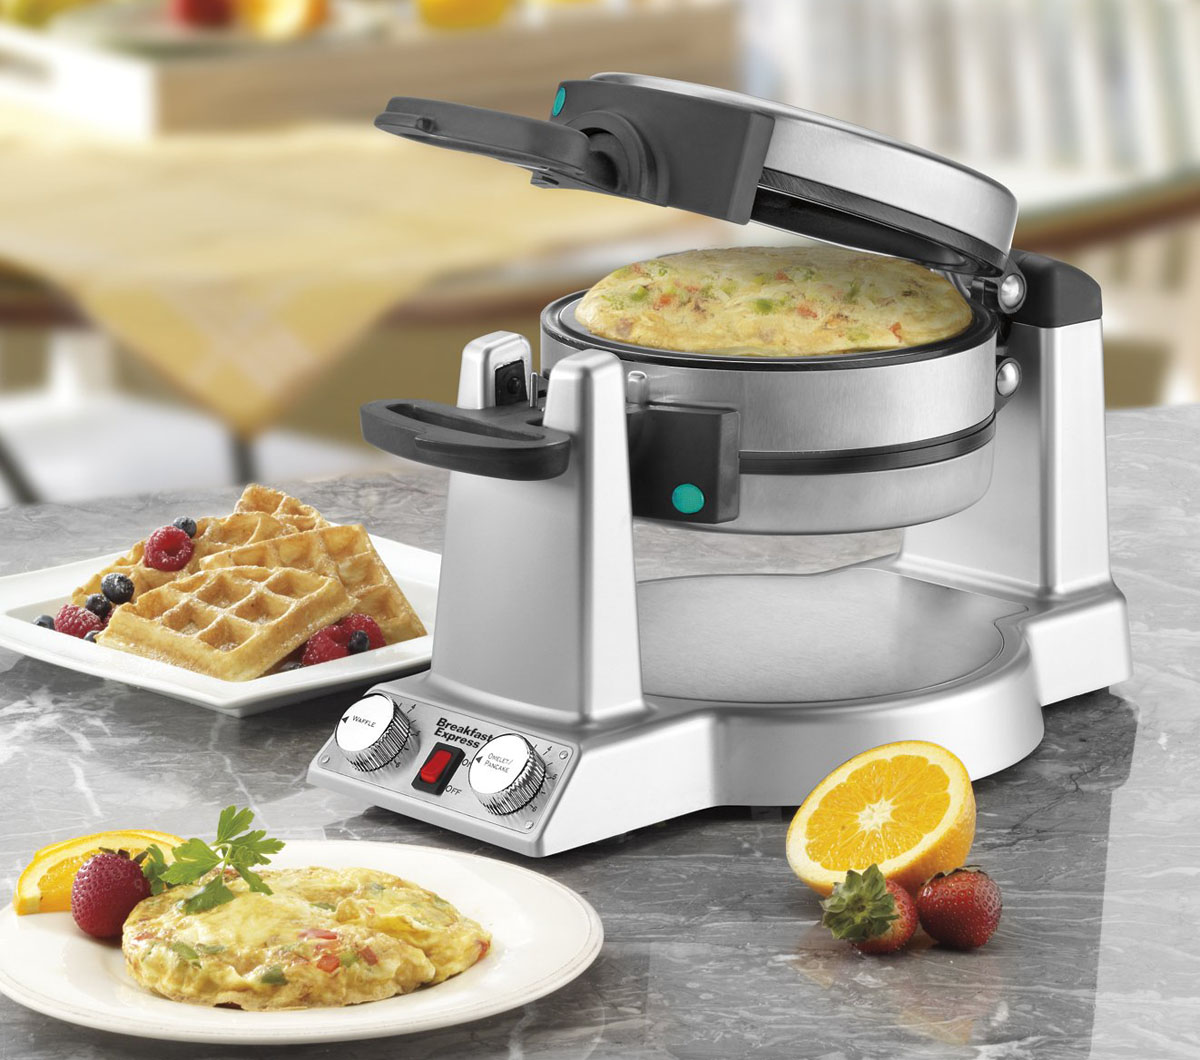 Waring WMR300 Belgian Waffle and Omelet Maker Review